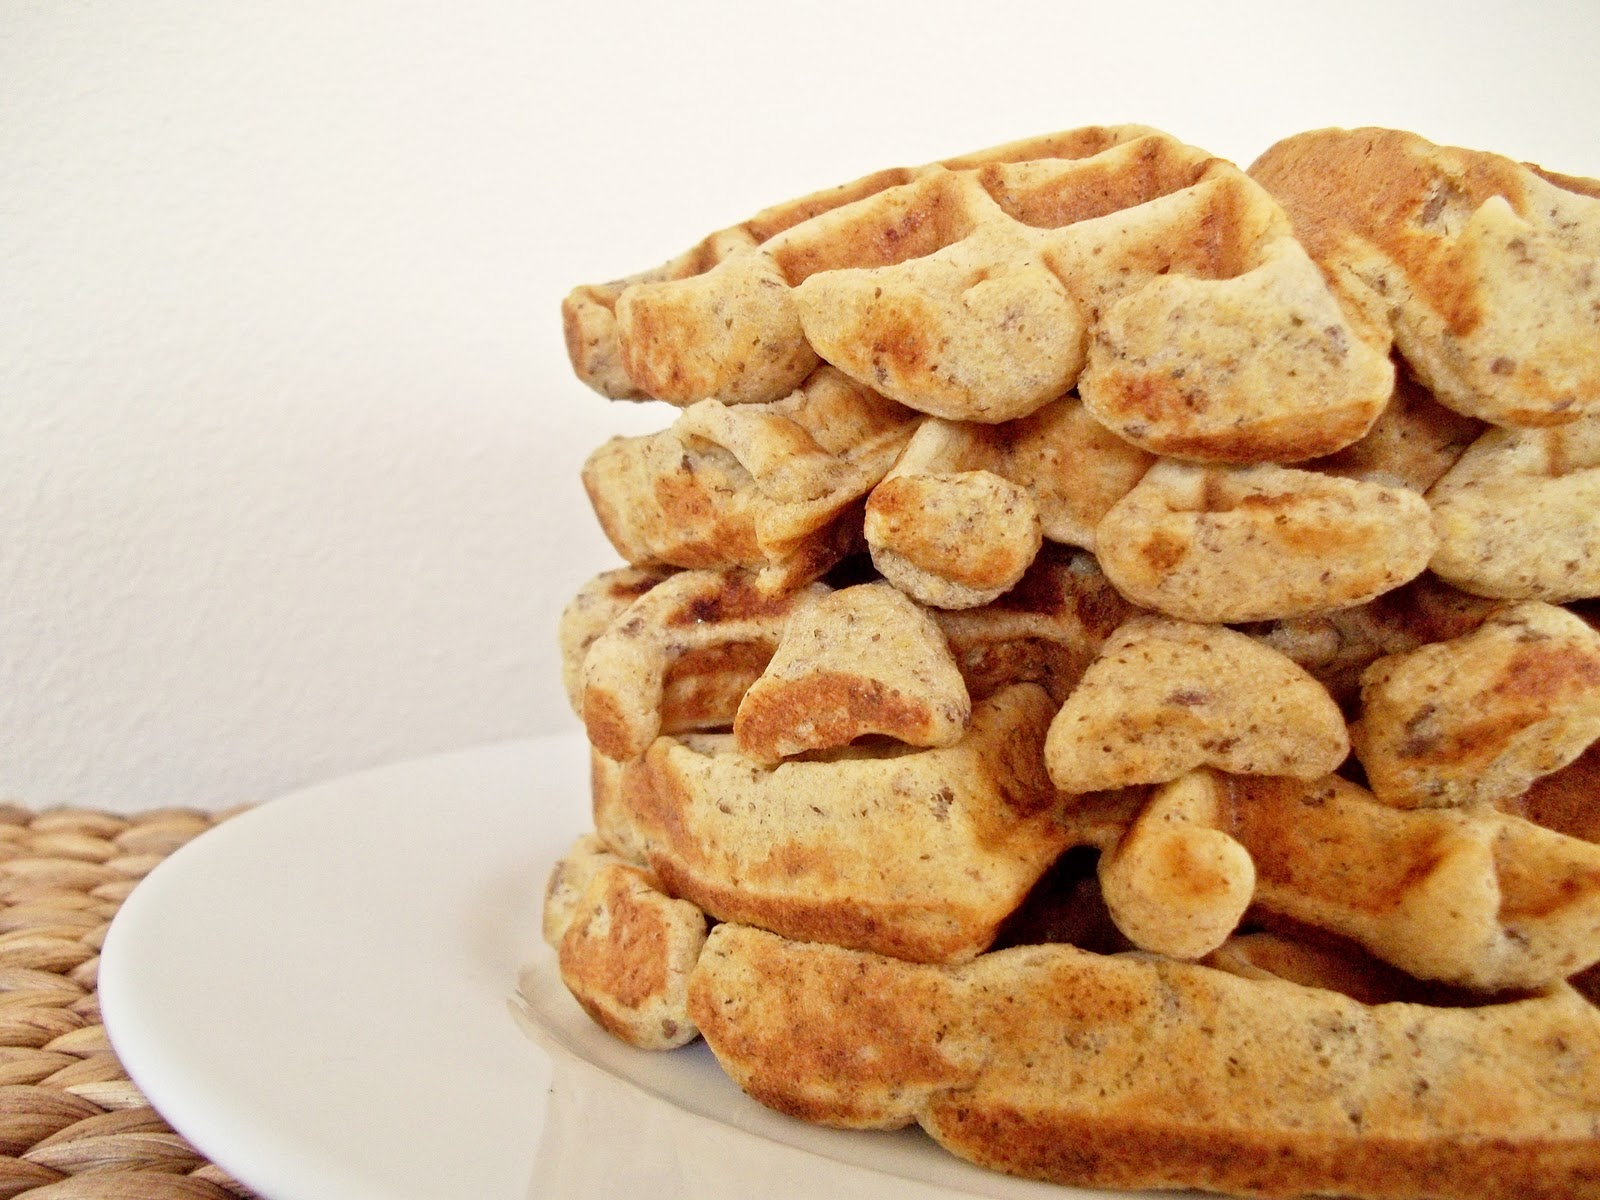 The Lonely Baker: Whole Grain Waffles